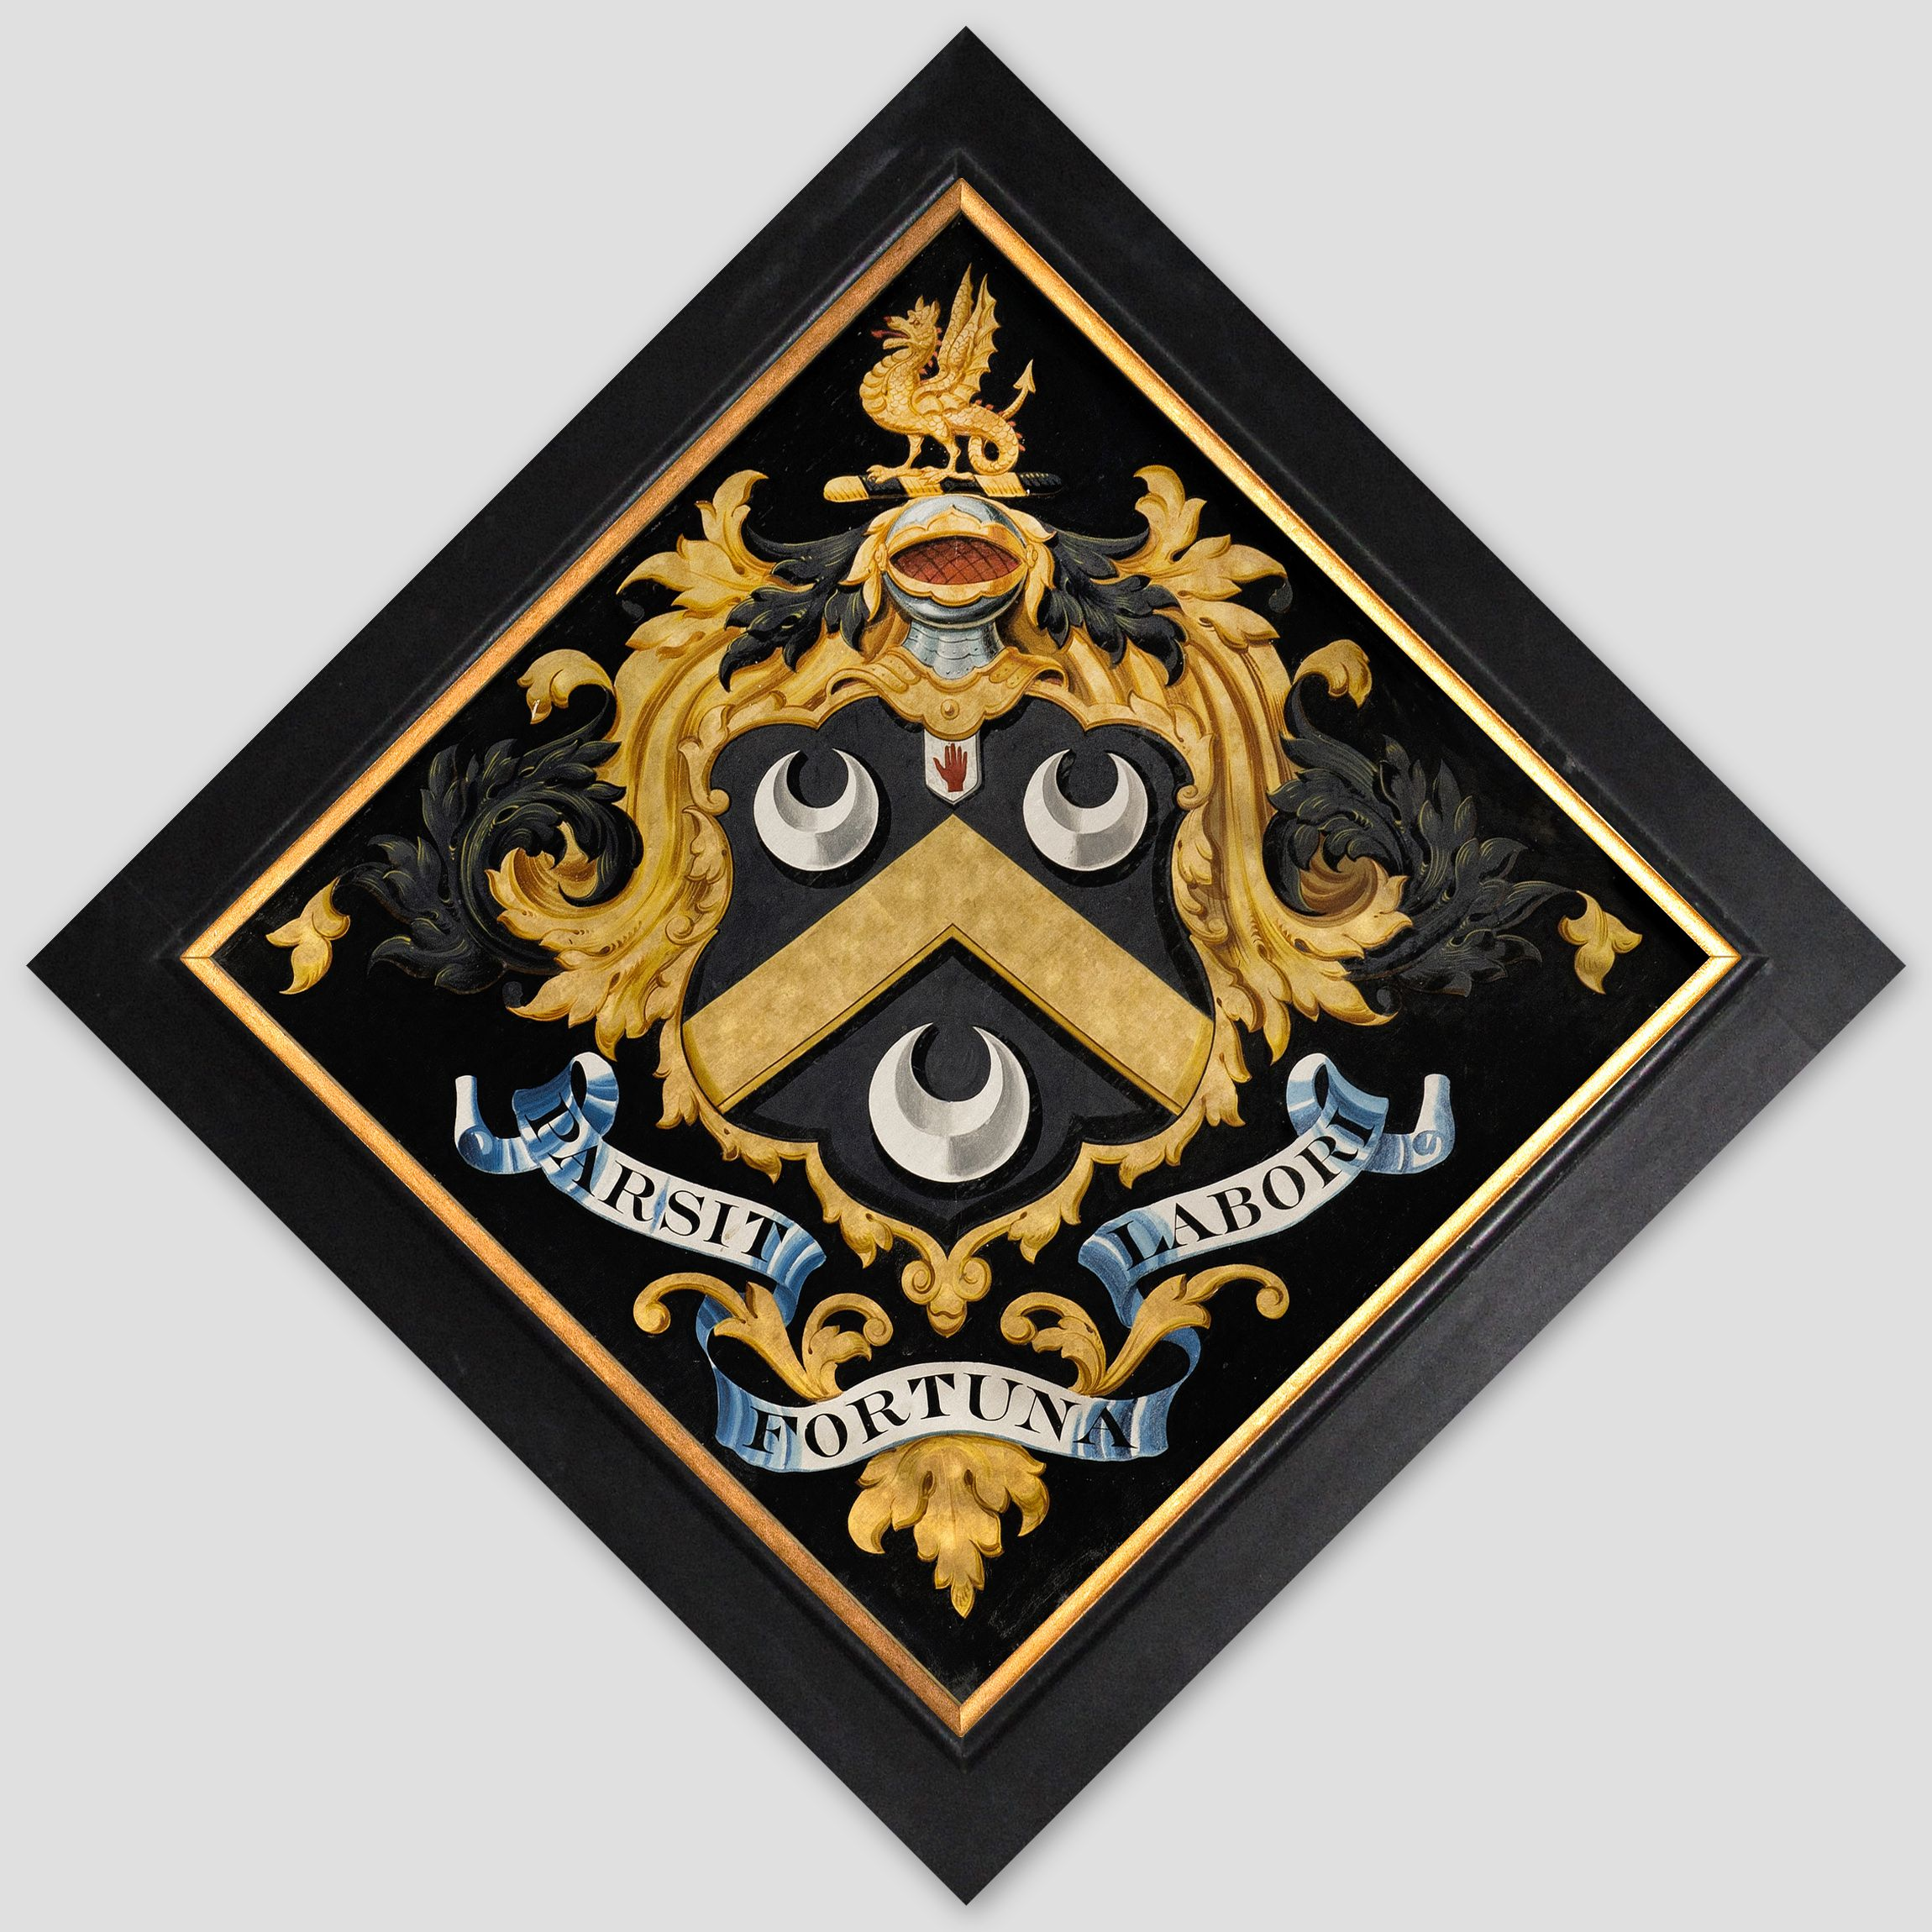 Hatchment in the church of st peter at east carlton northants hatchment in the church of st peter at east carlton northants england biocorpaavc